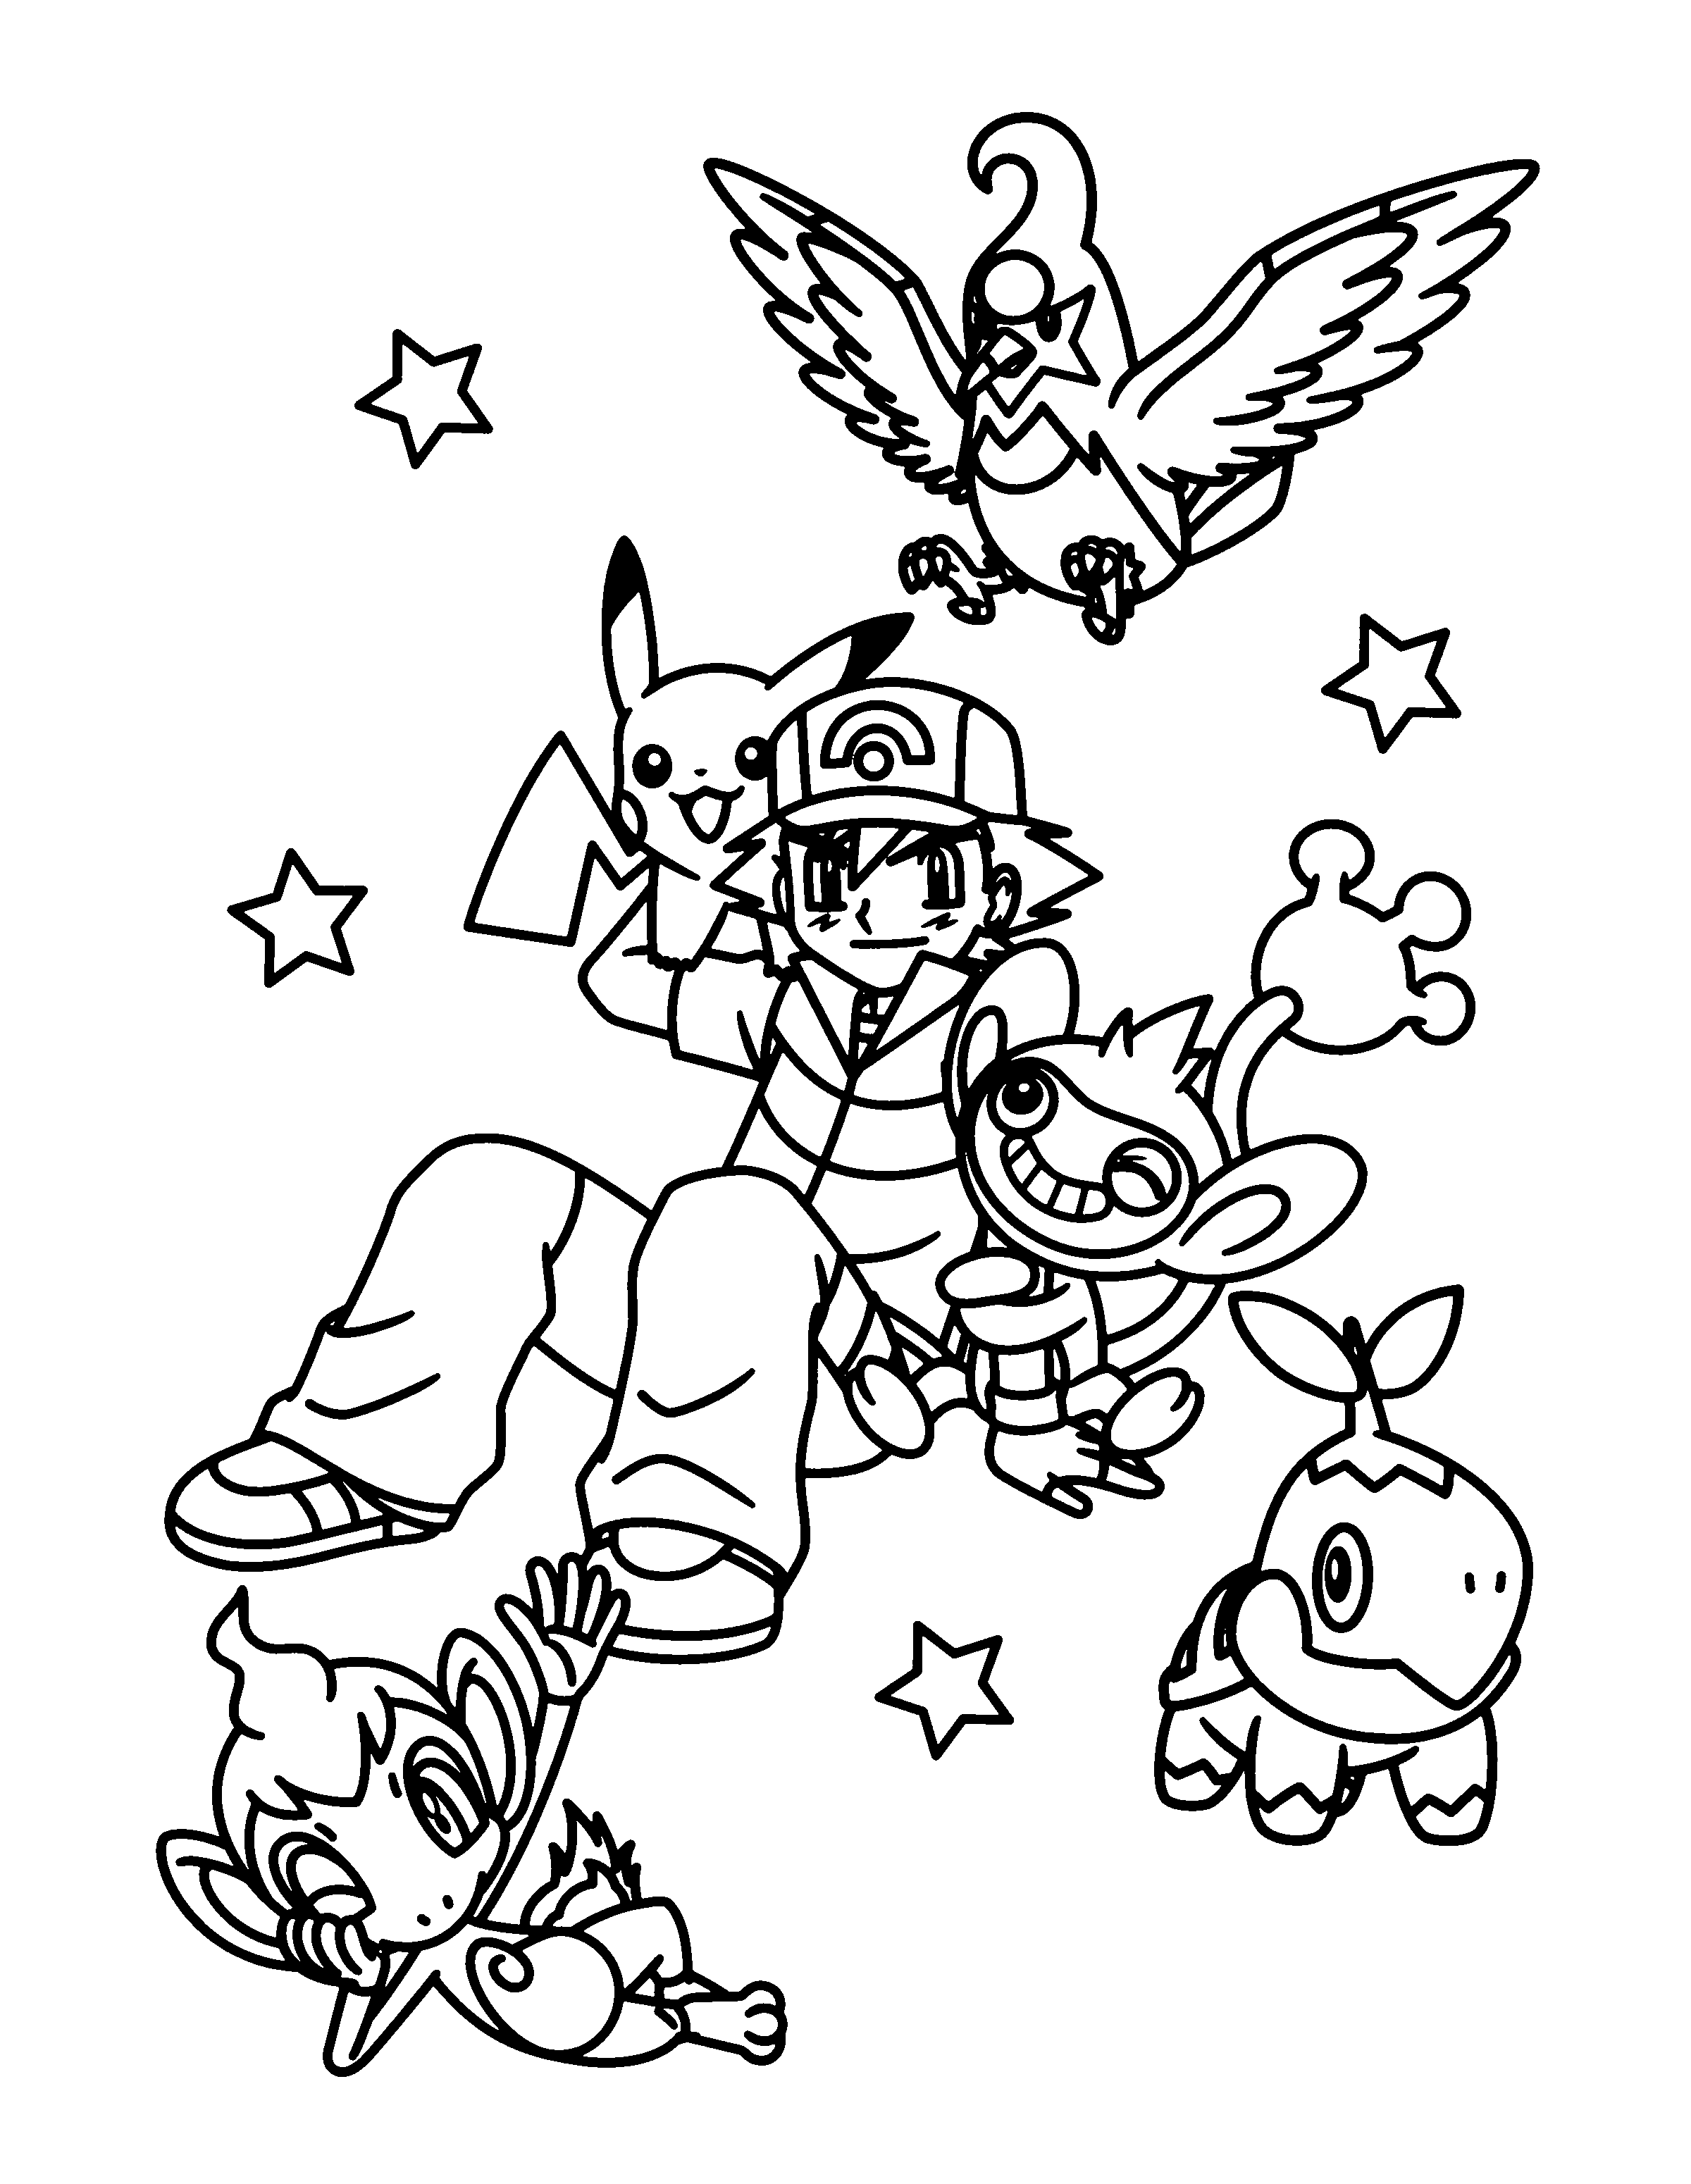 Awesome site for printable pokemon coloring pages!! | Kids | Pinterest